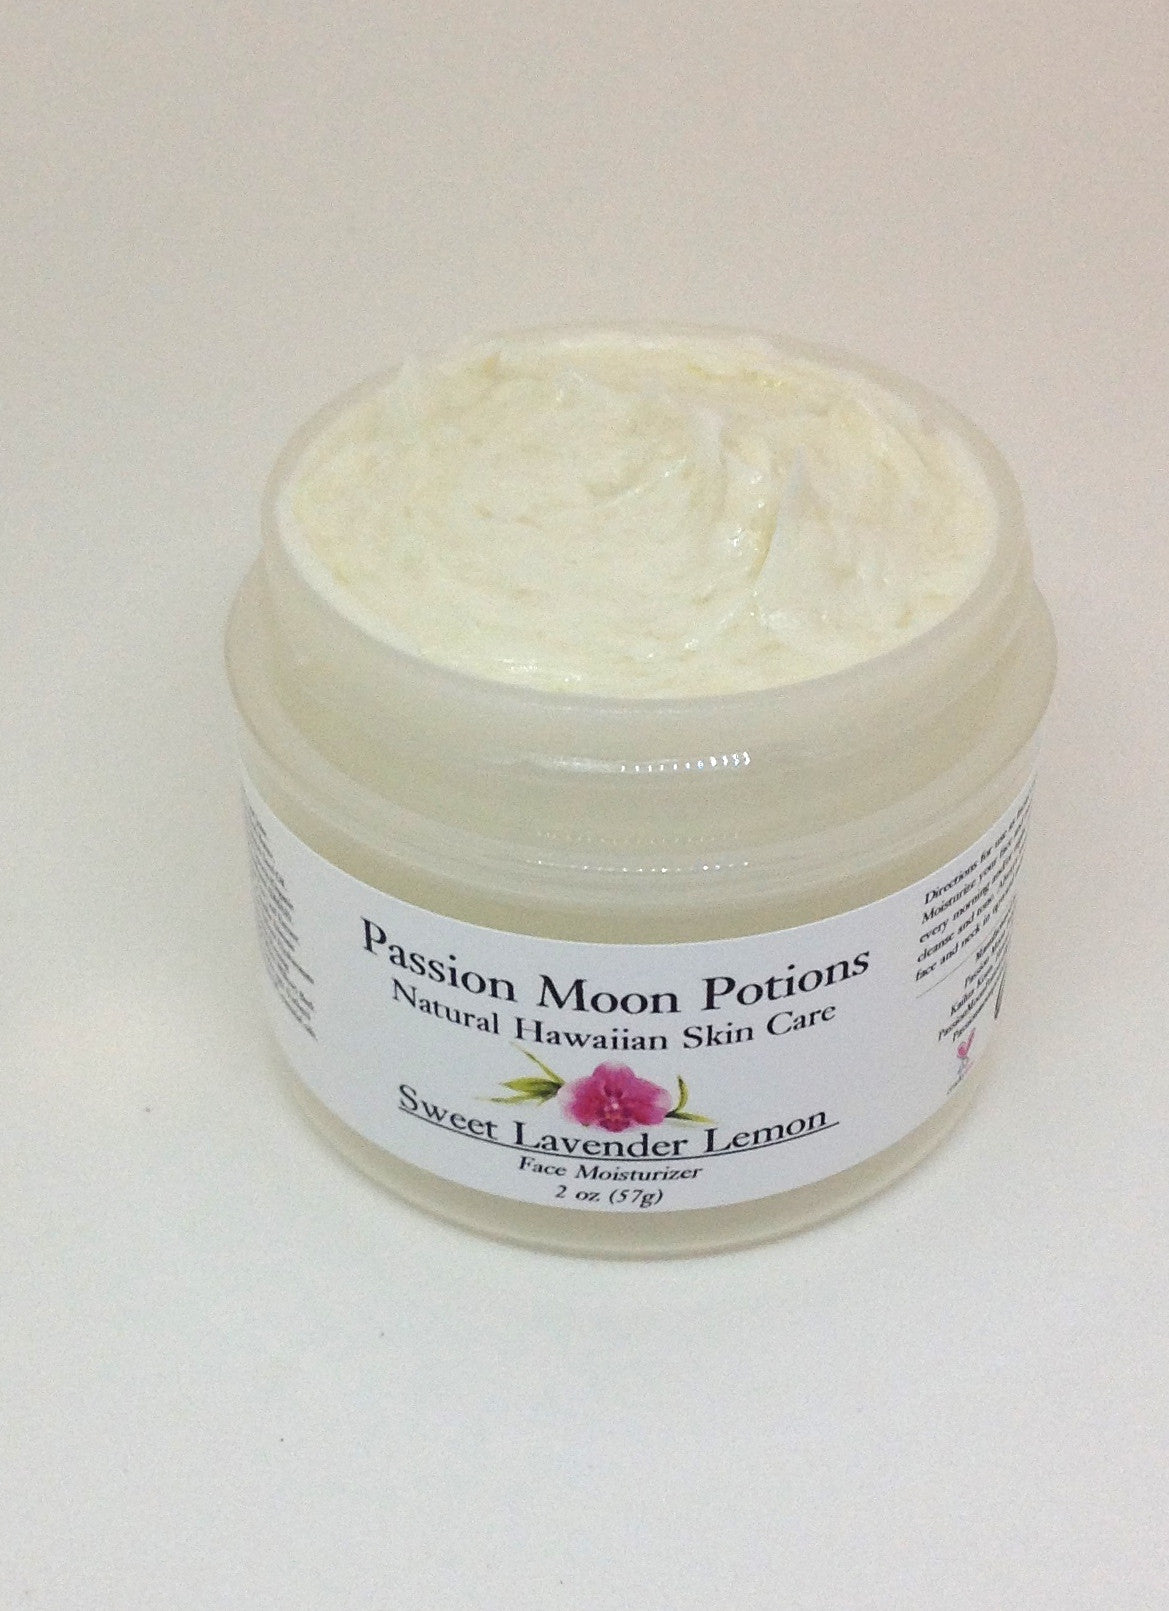 Sweet Lavender Lemon Face Moisturizer - Passion Moon Potions - 3